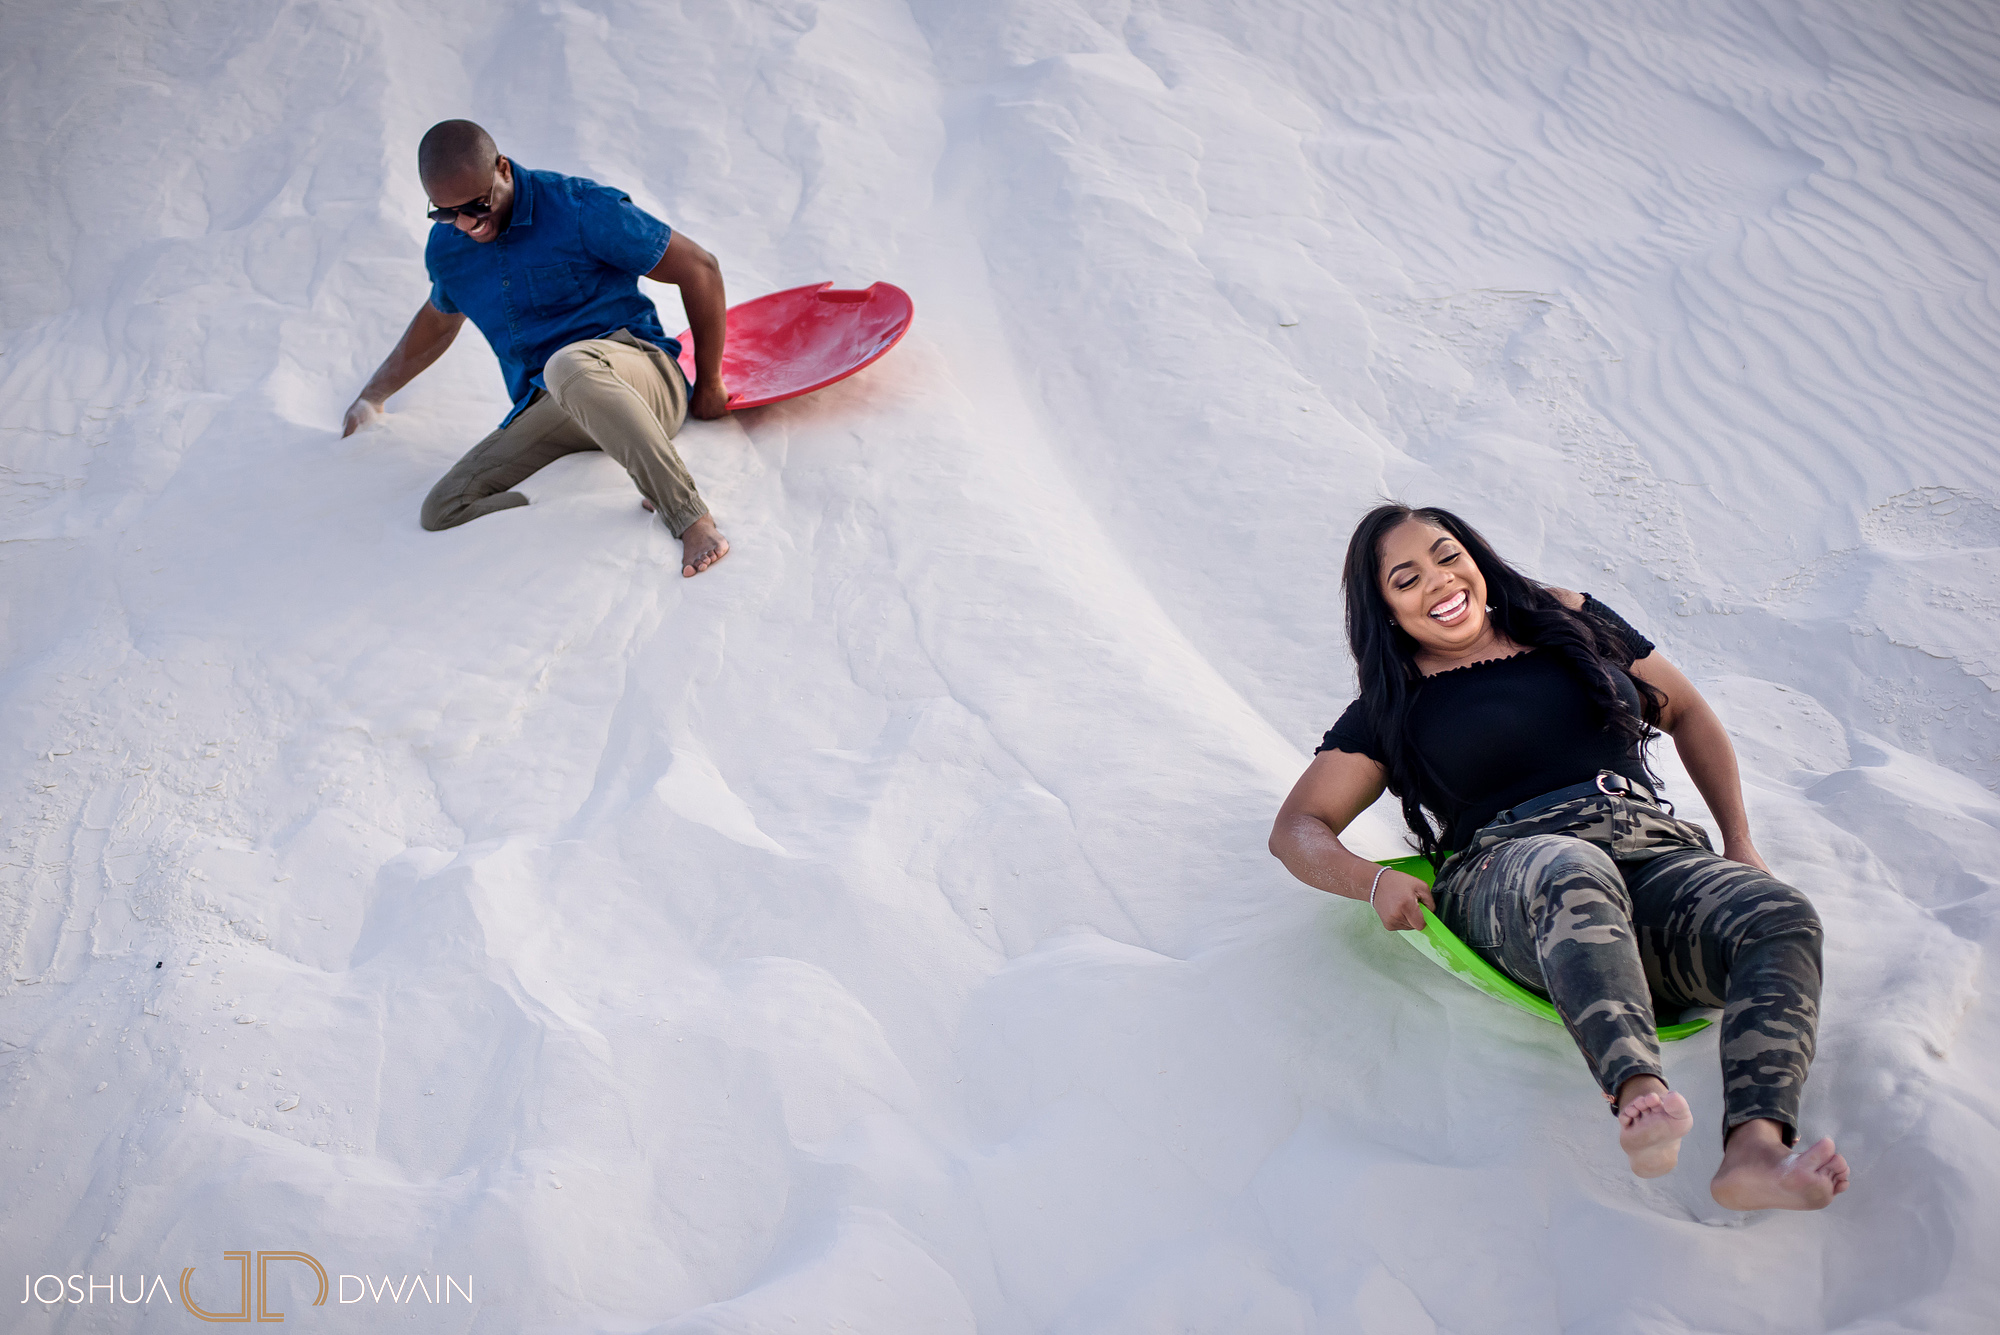 brianna-william-09-white-sands-monument-national-park-new-mexico-engagement-photographer-joshua-dwain-